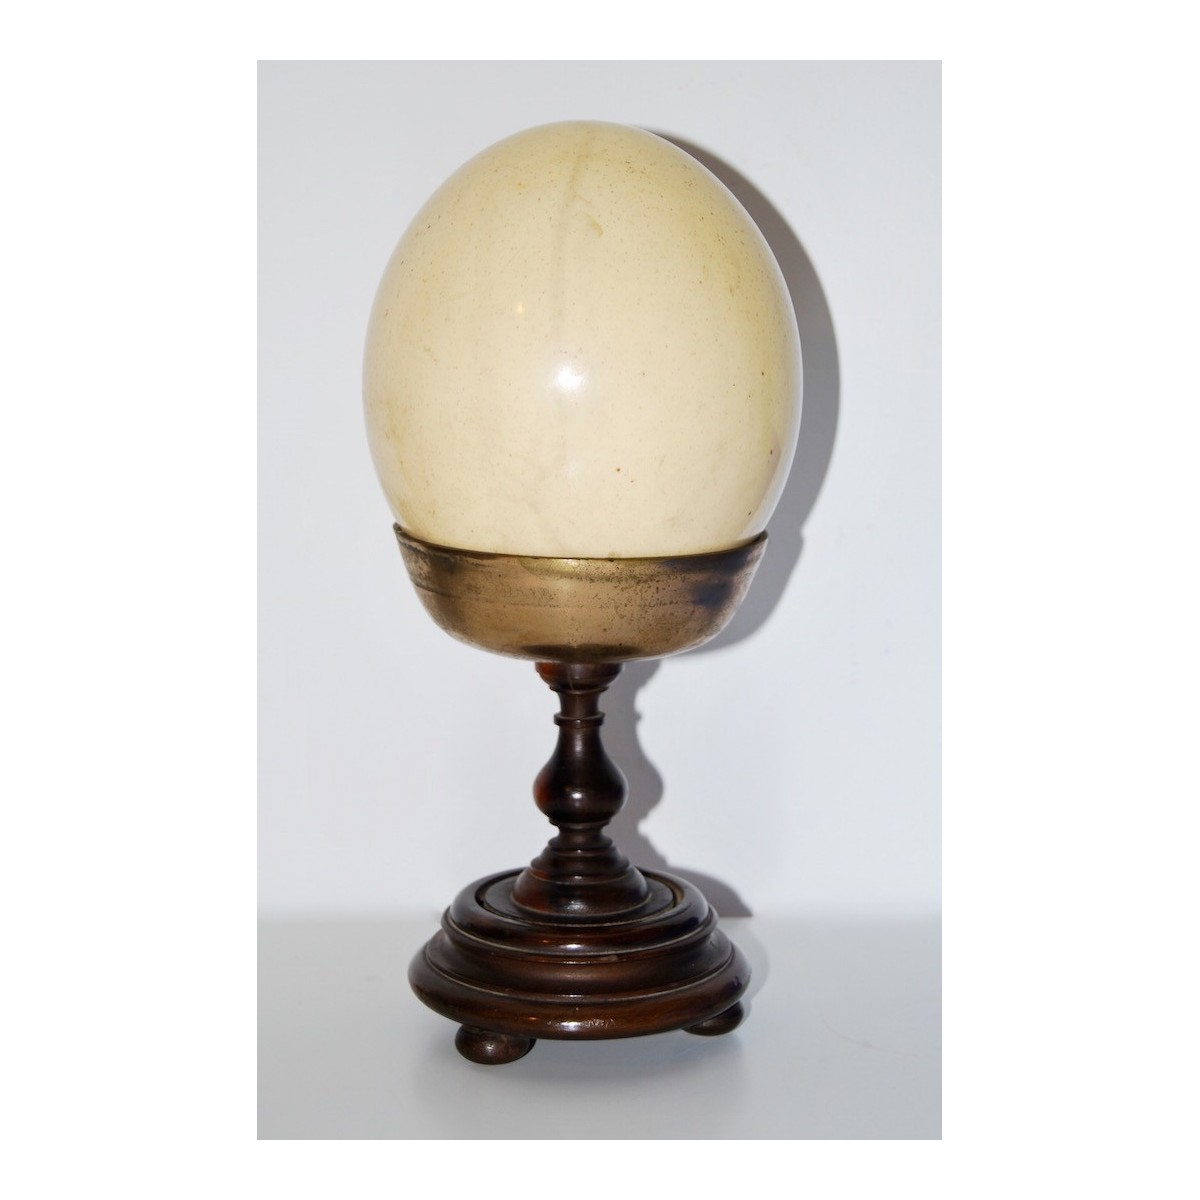 Chalice with ostrich egg, 19th century.